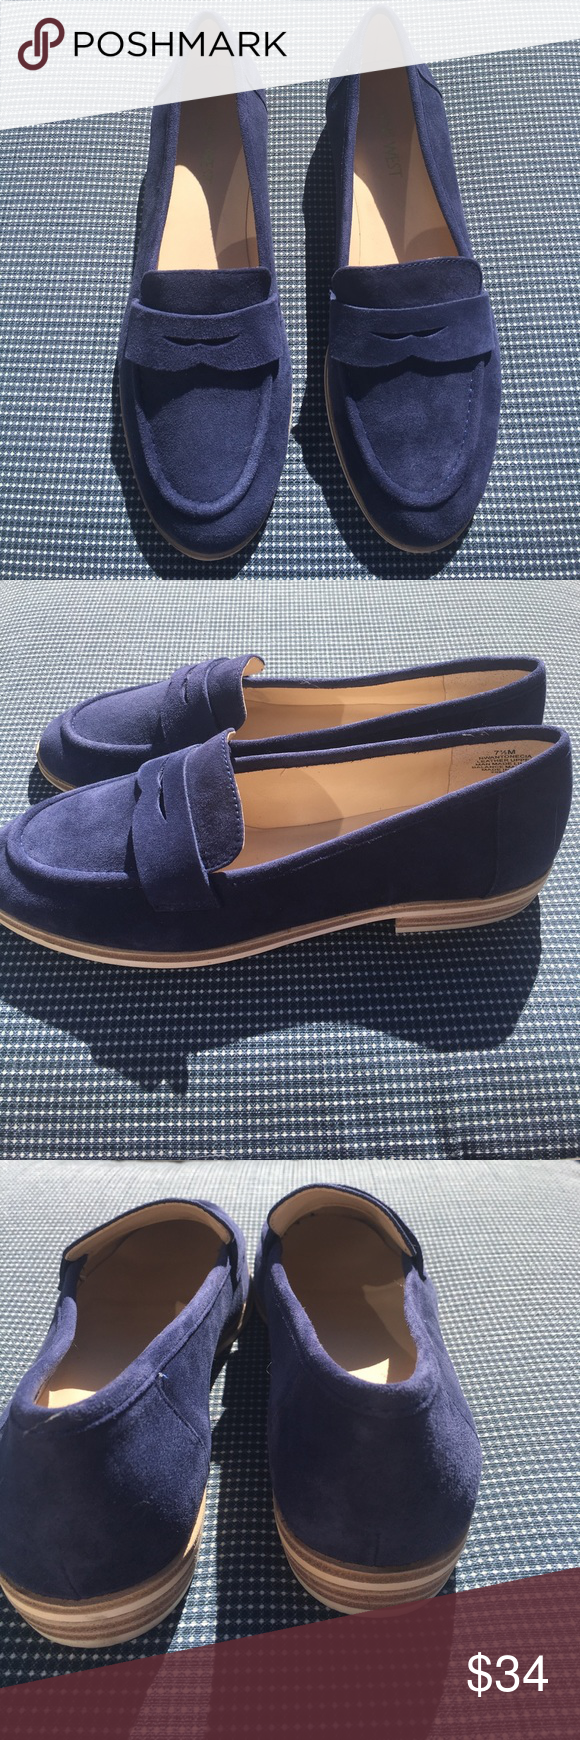 New indigo Nine West suede loafers Chic comfortable brand new never worn Nine West indigo suede loafers. True to size Nine West Shoes Flats & Loafers